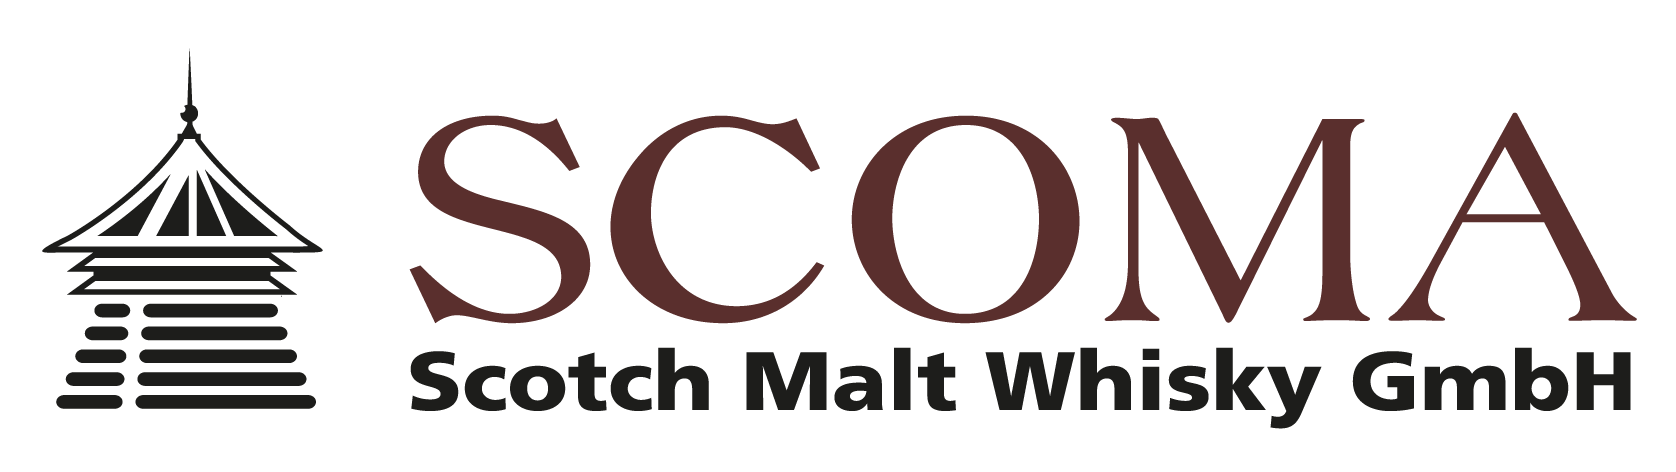 Onlineshop: SCOMA - Scotch Malt Whisky GmbH. First Whiskey Mail Order in Germany.